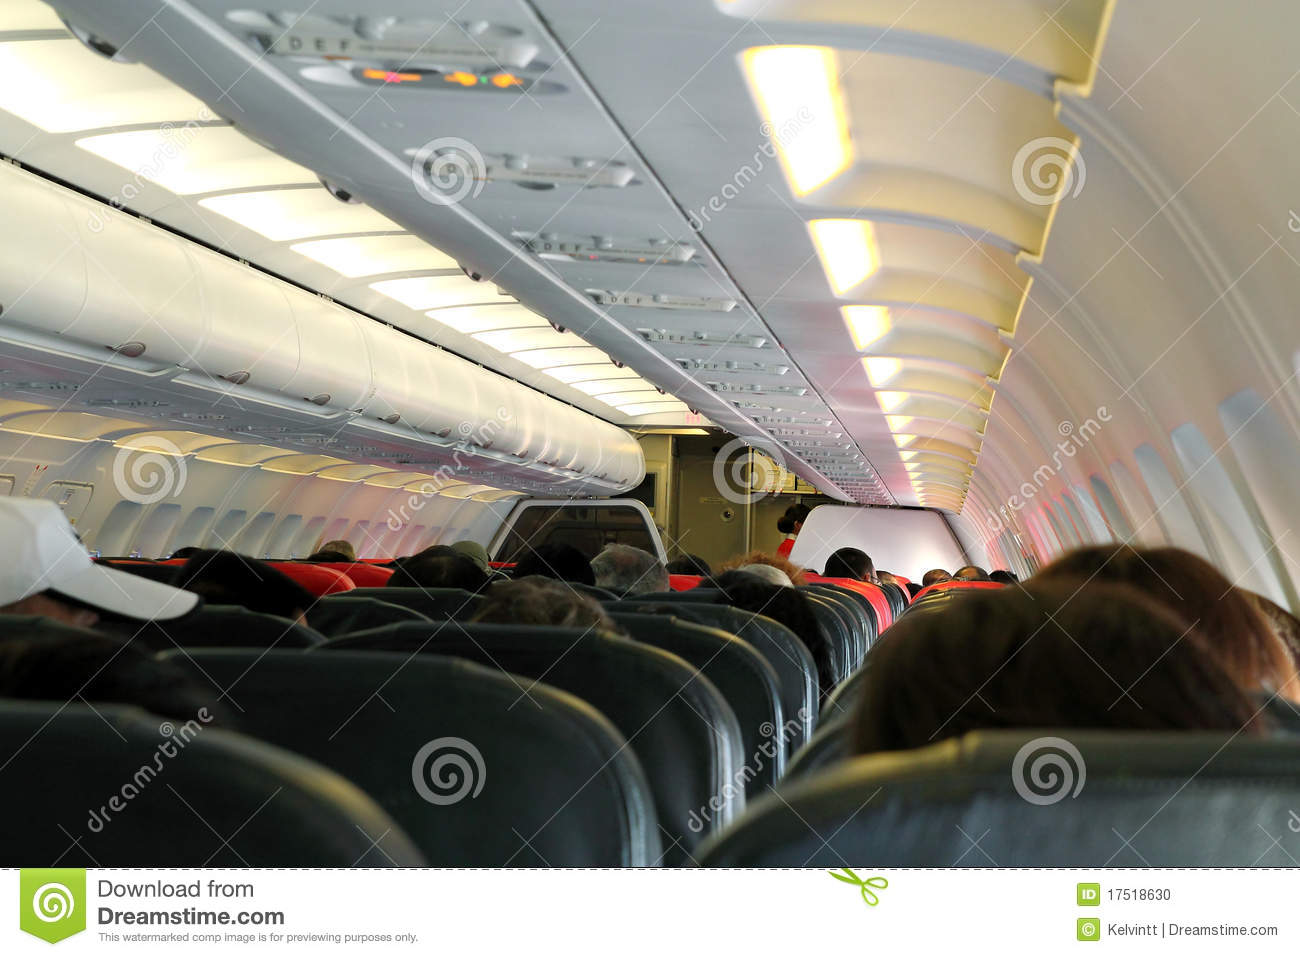 Cheap Air Filters >> Airplane Cabin stock photo. Image of destination, commercial - 17518630